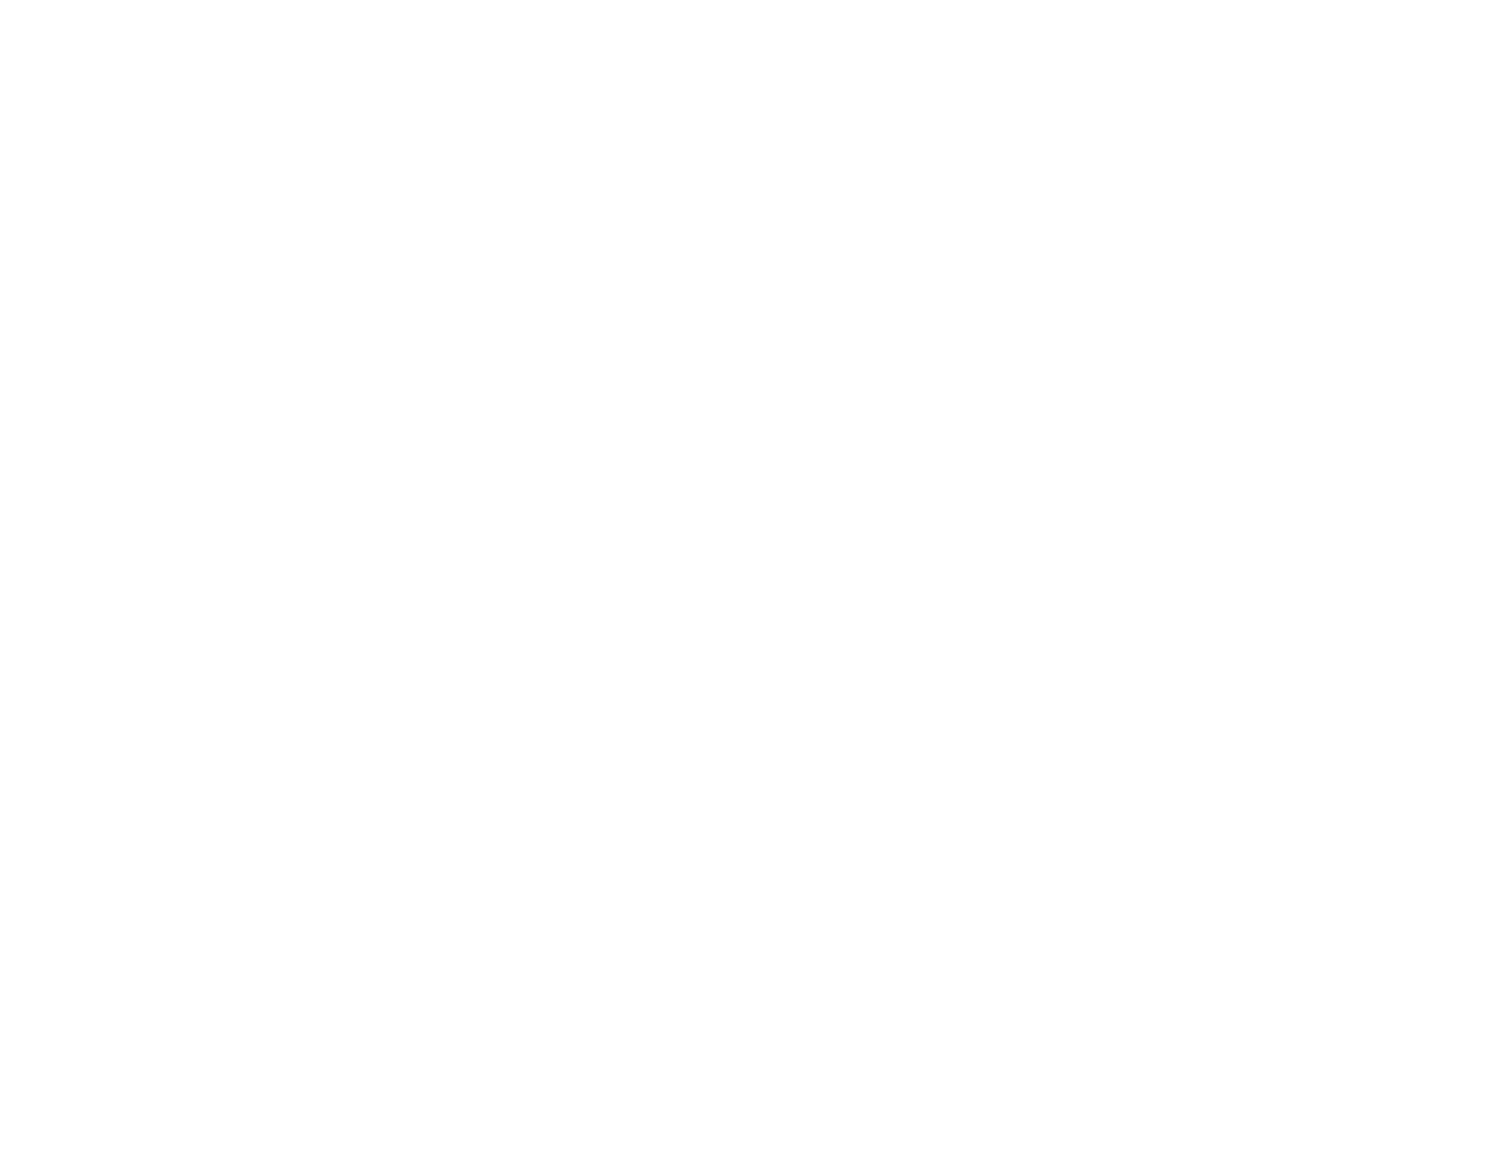 Guild on 30th